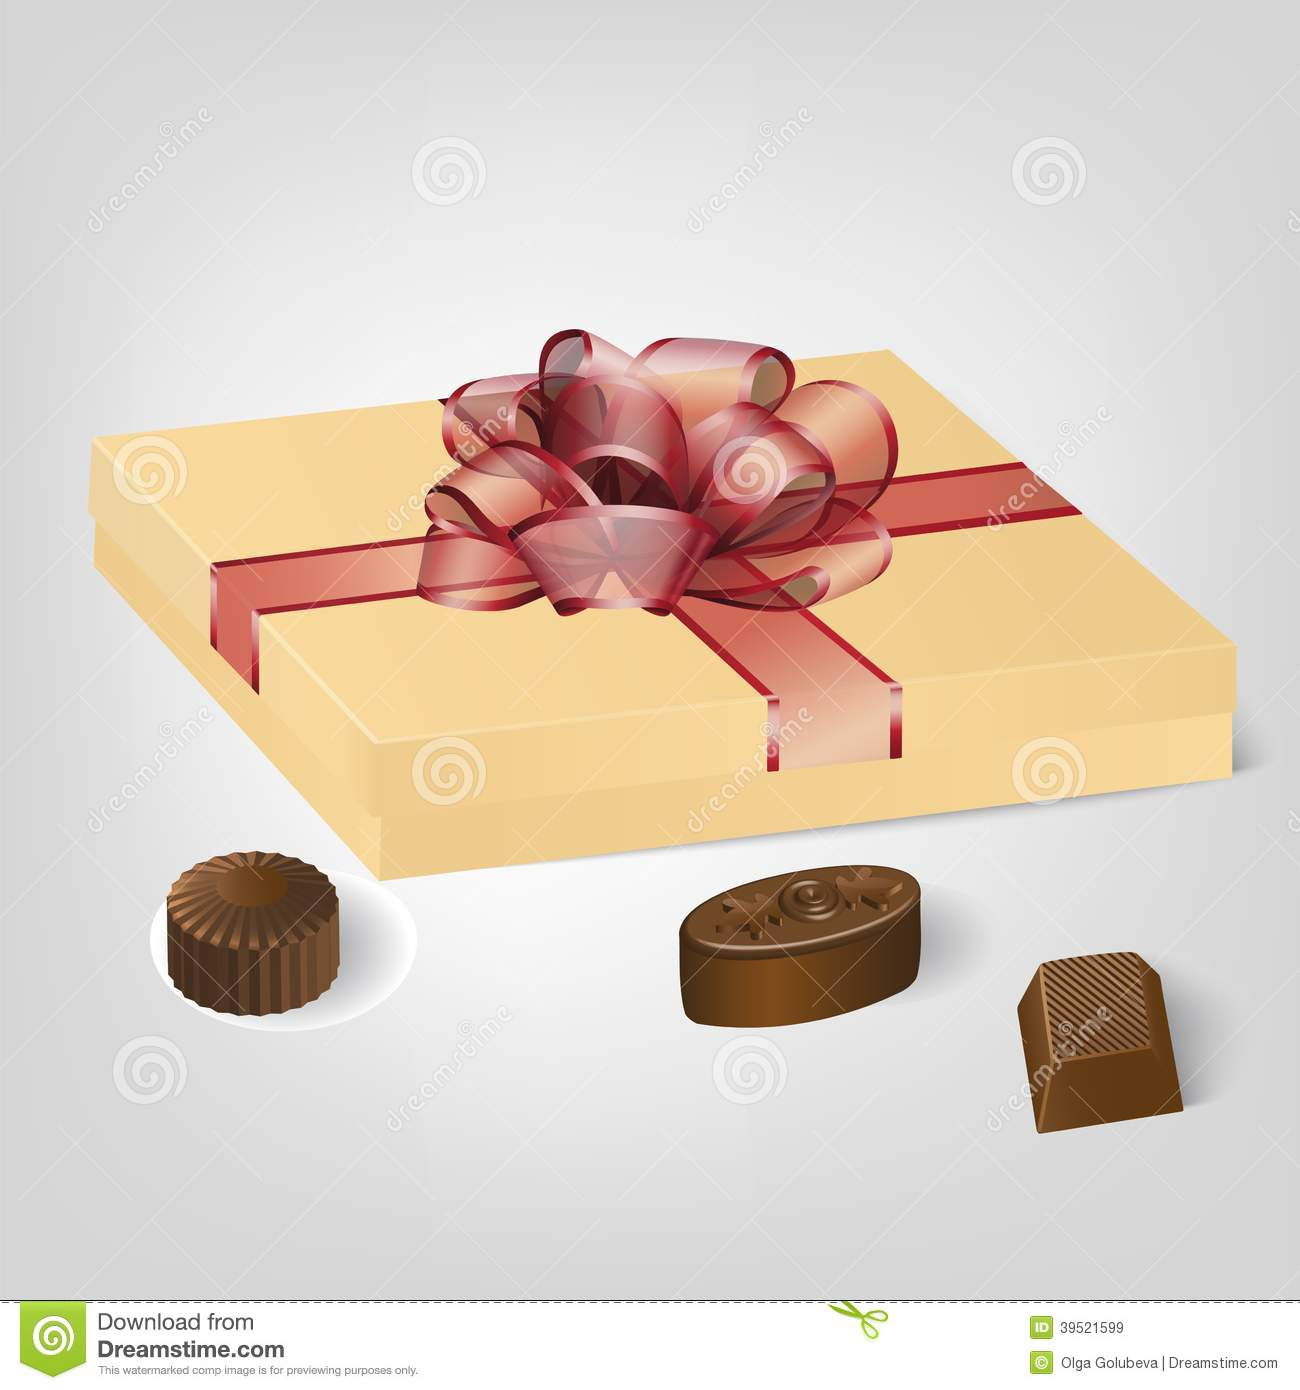 Gold gift box of chocolate candies